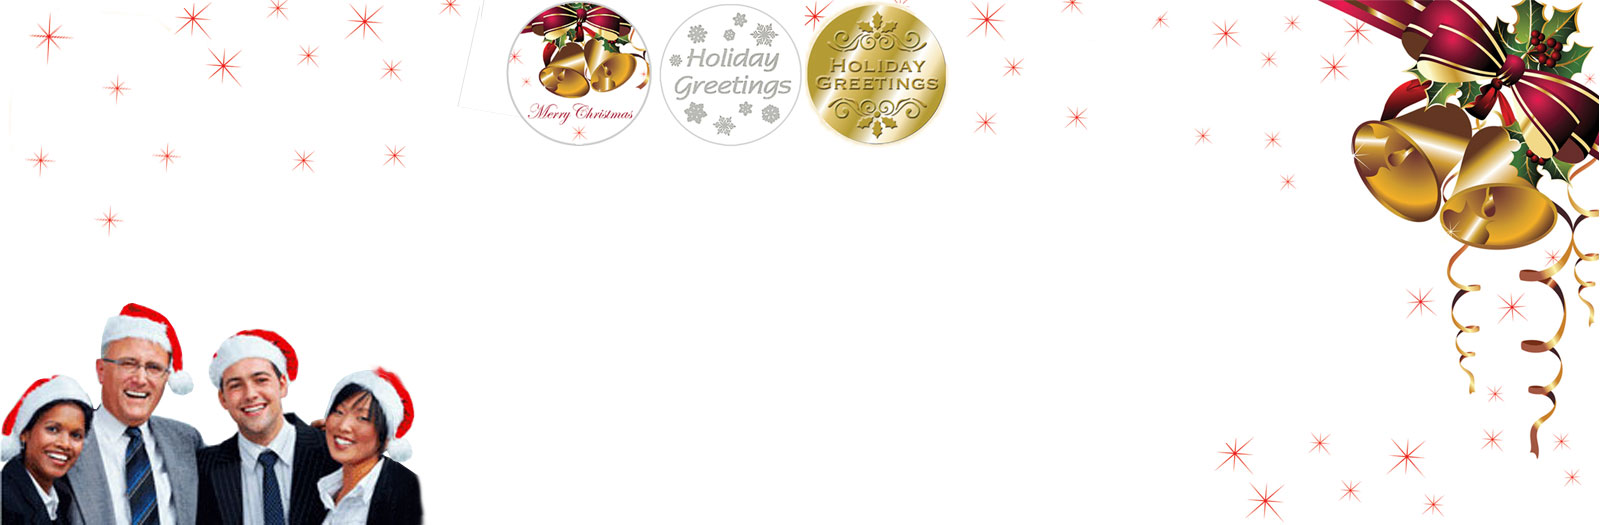 Holiday-Banner-3-seals